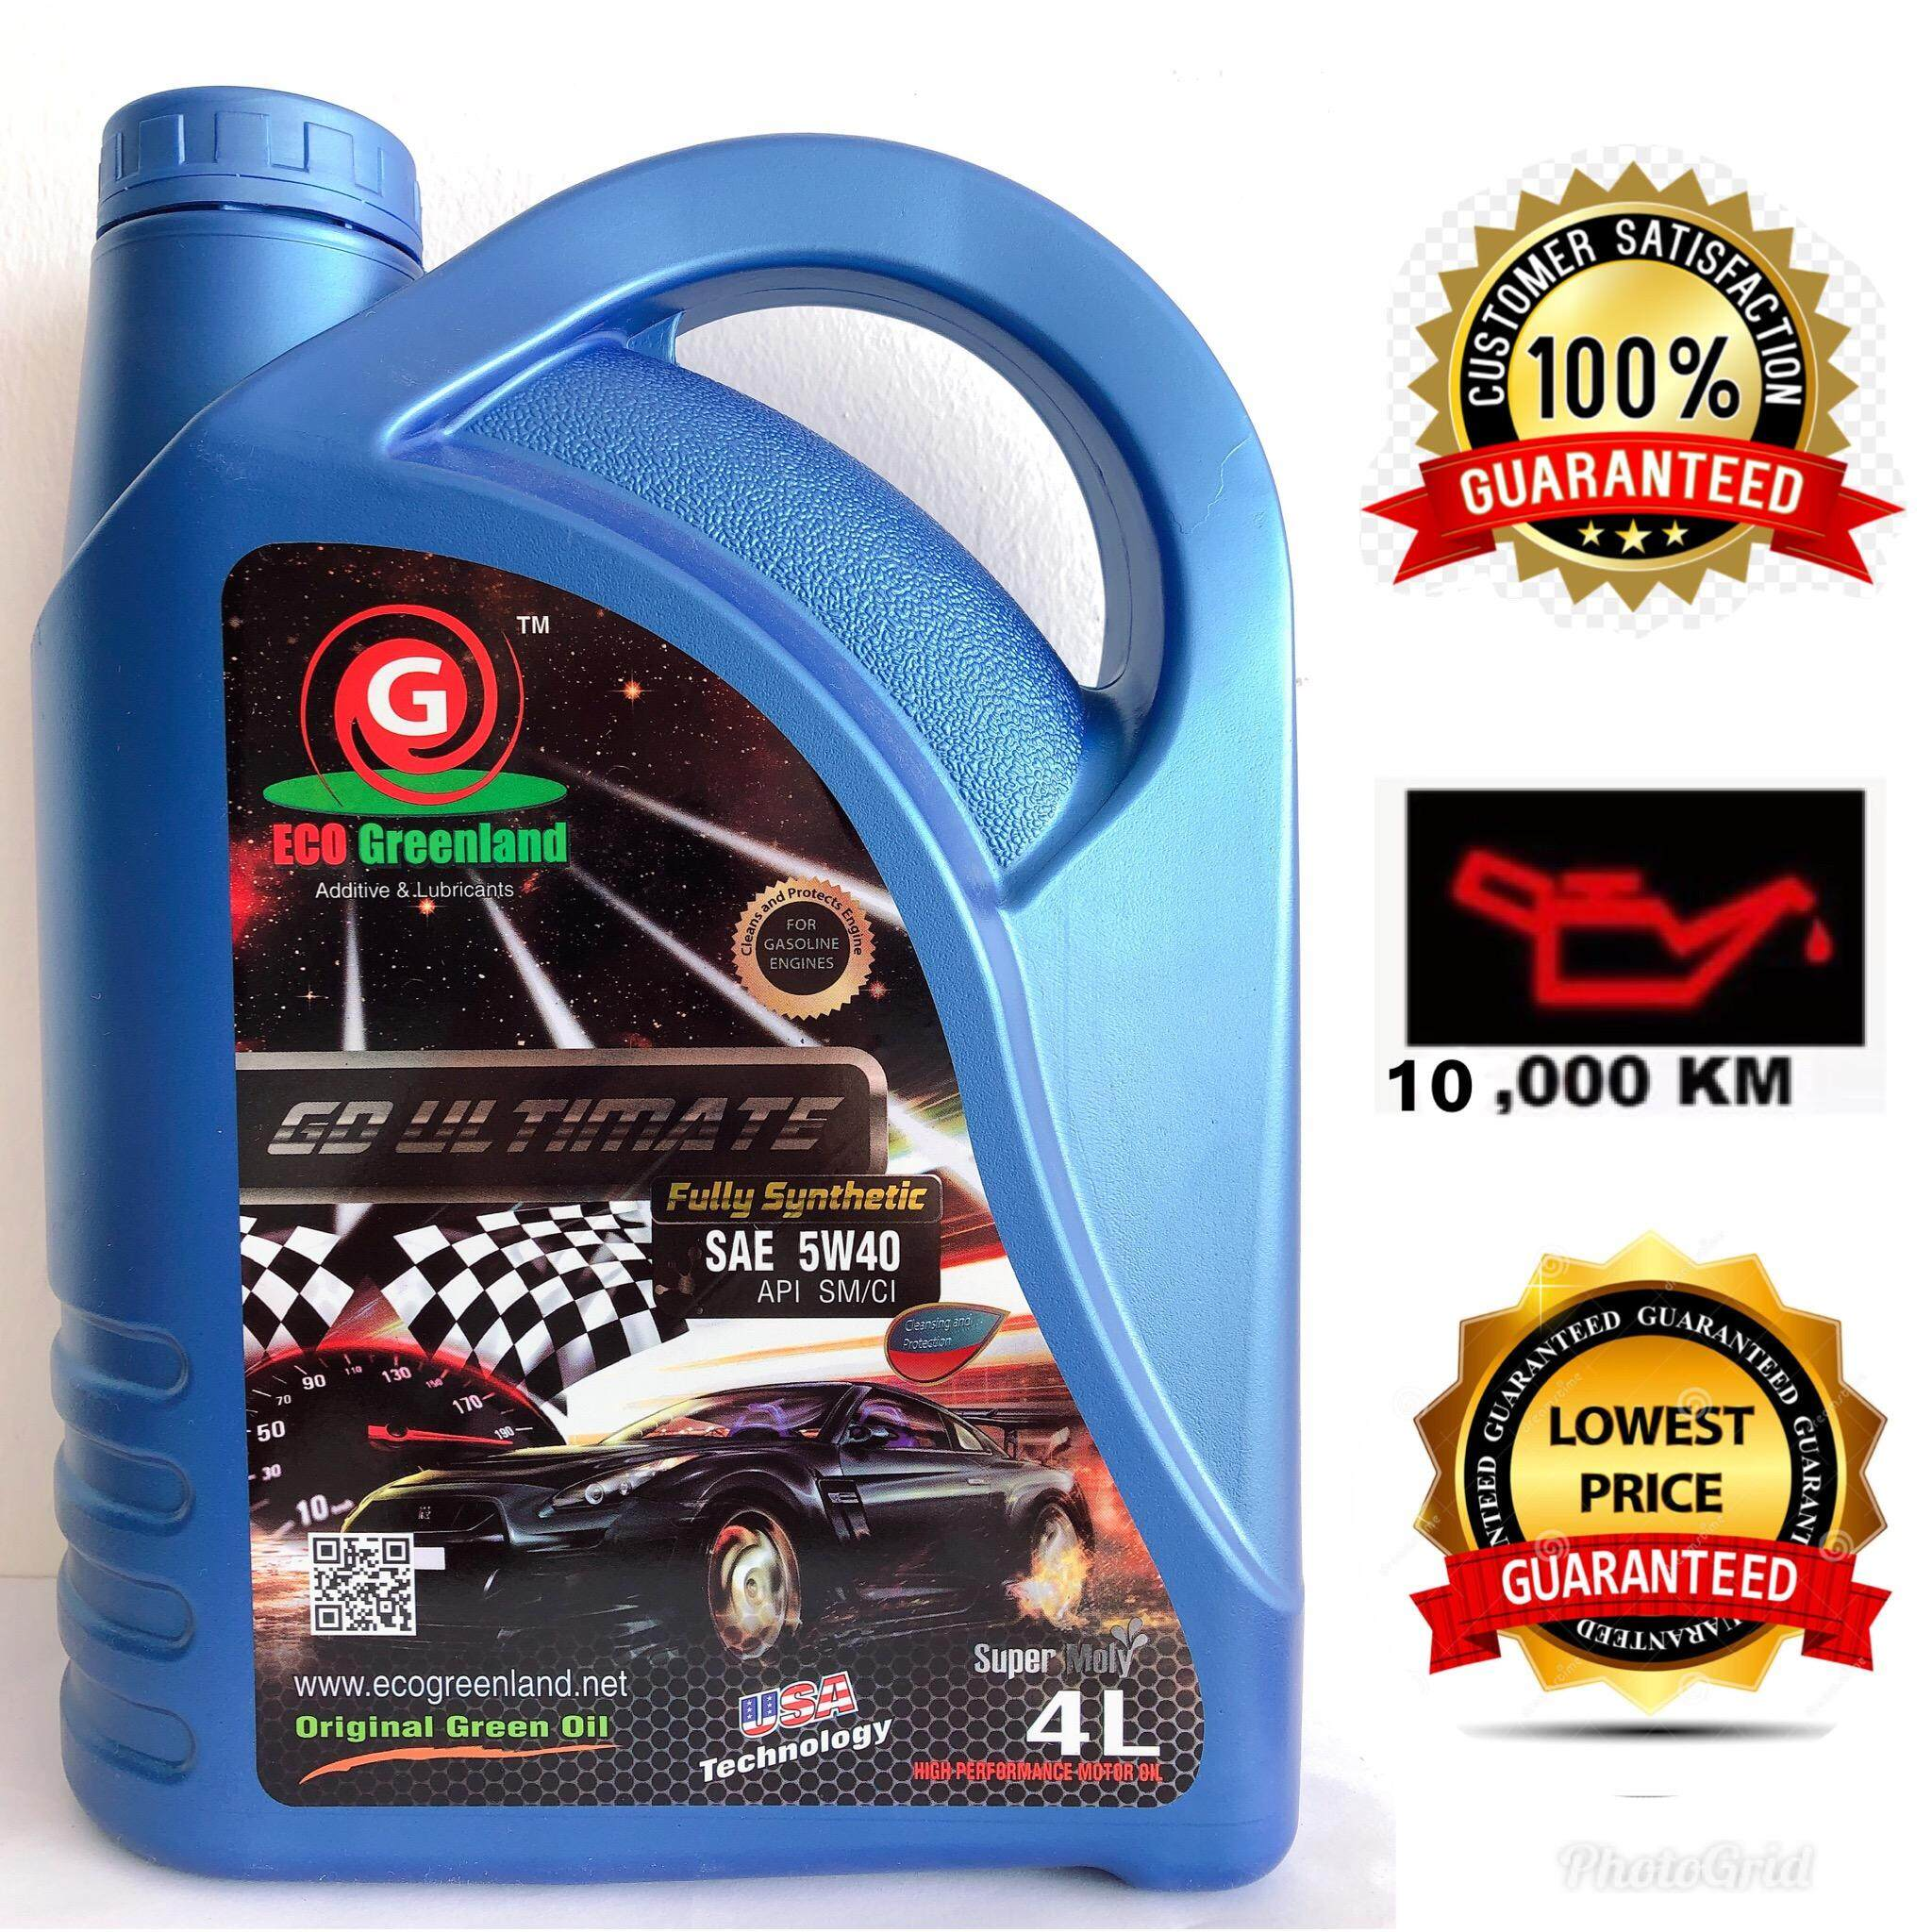 Eco Greenland Engine Oil 5w40 Fully Synthetic By E&b.